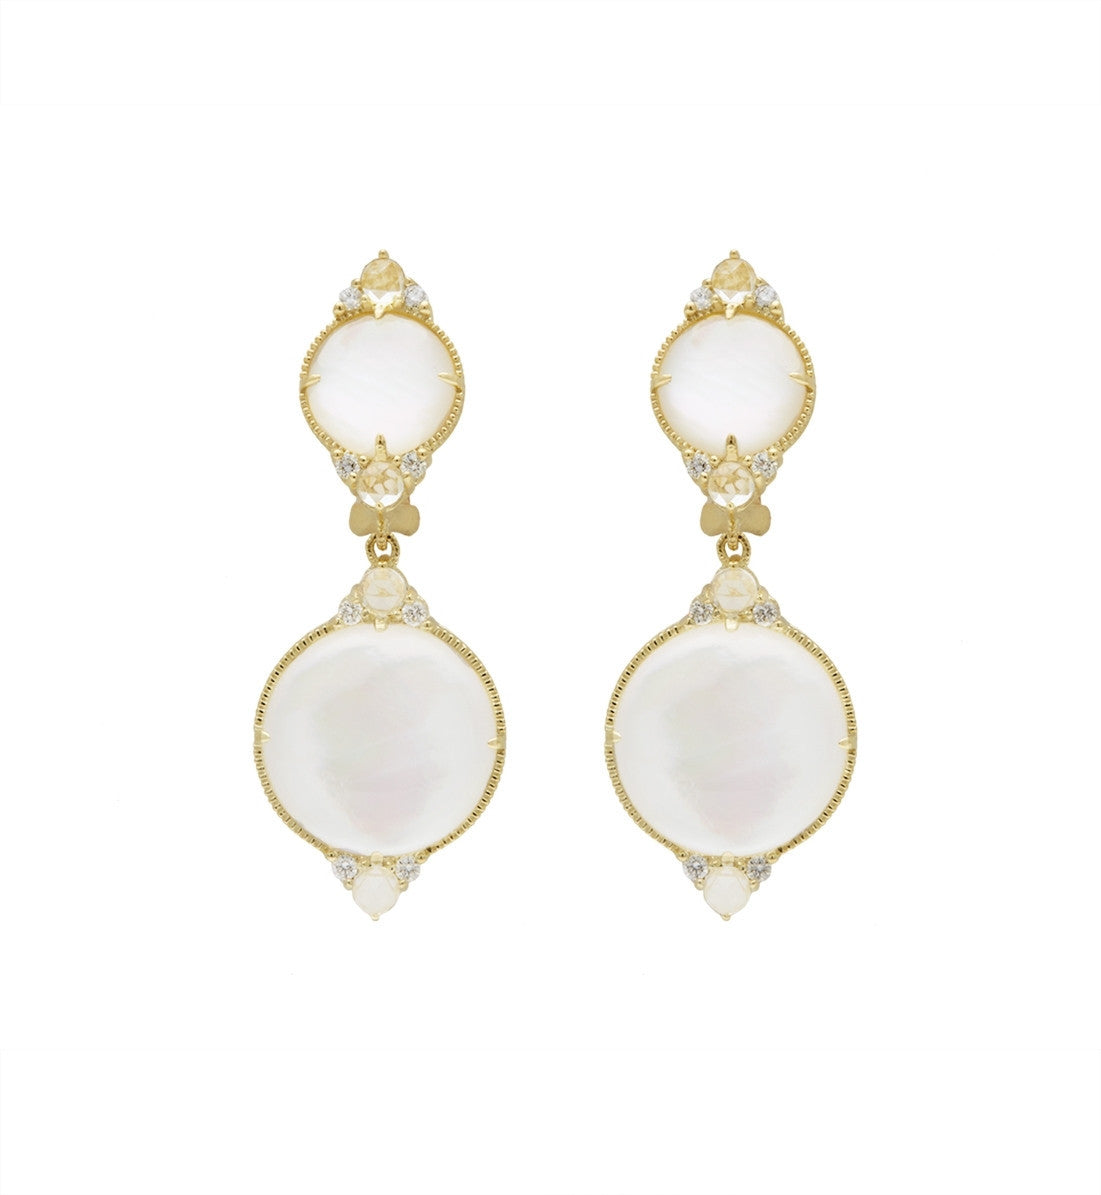 Allure Rock Crystal Quartz Double Drop Earrings - Judith Ripka -  Earring - Ora by D'Amore Jewelers - 1